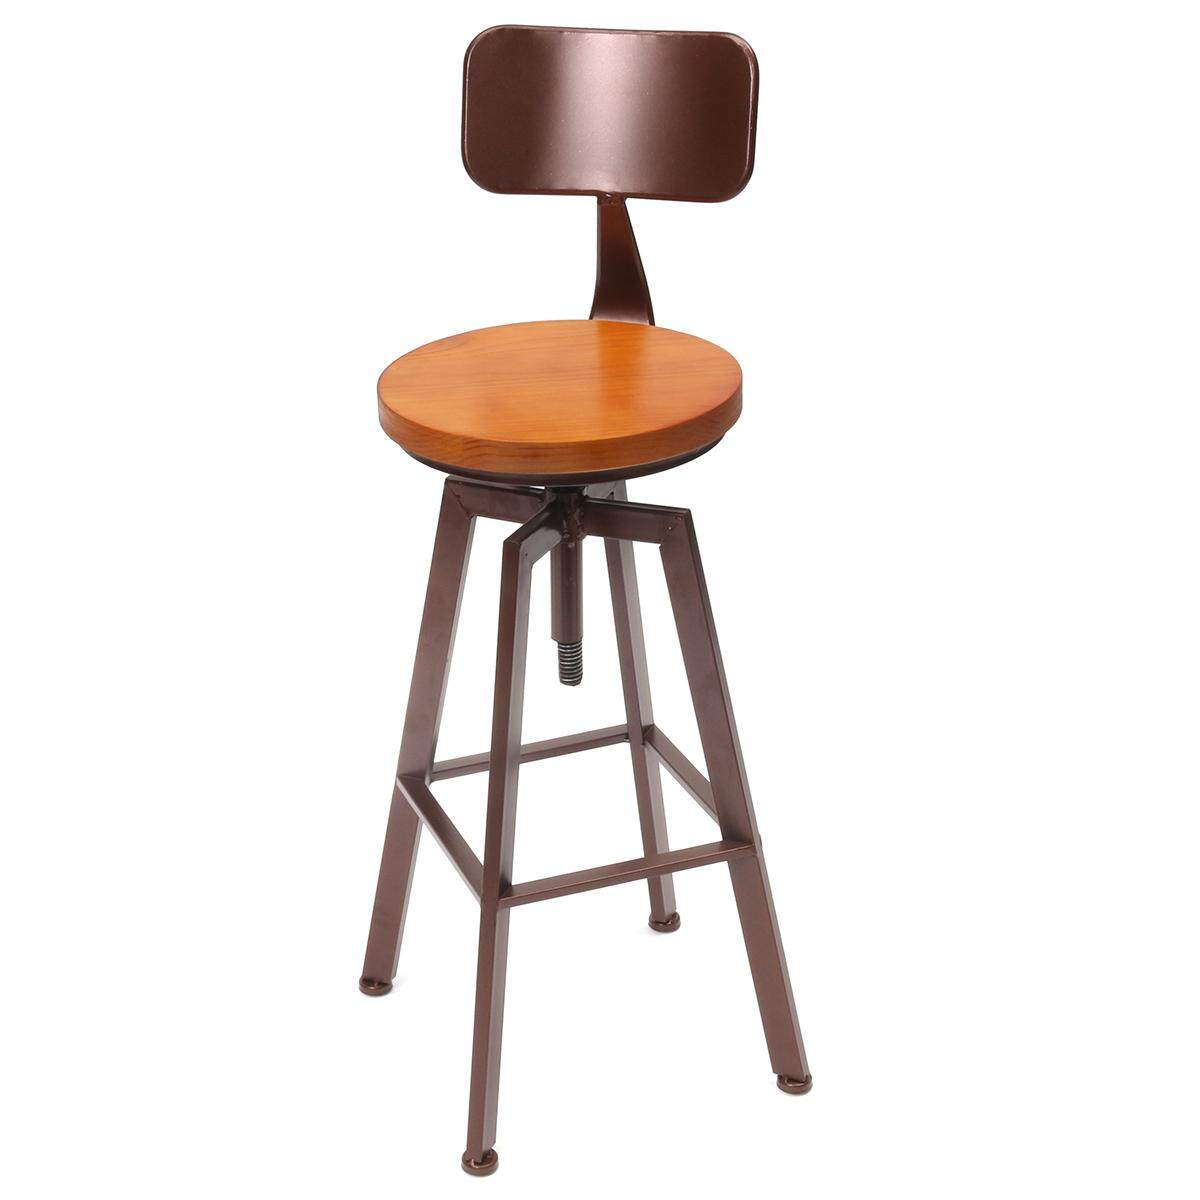 VINTAGE RETRO RUSTIC INDUSTRIAL METALSWIVEL BAR STOOL KITCHEN COUNTER CHAIR Have a back - intl